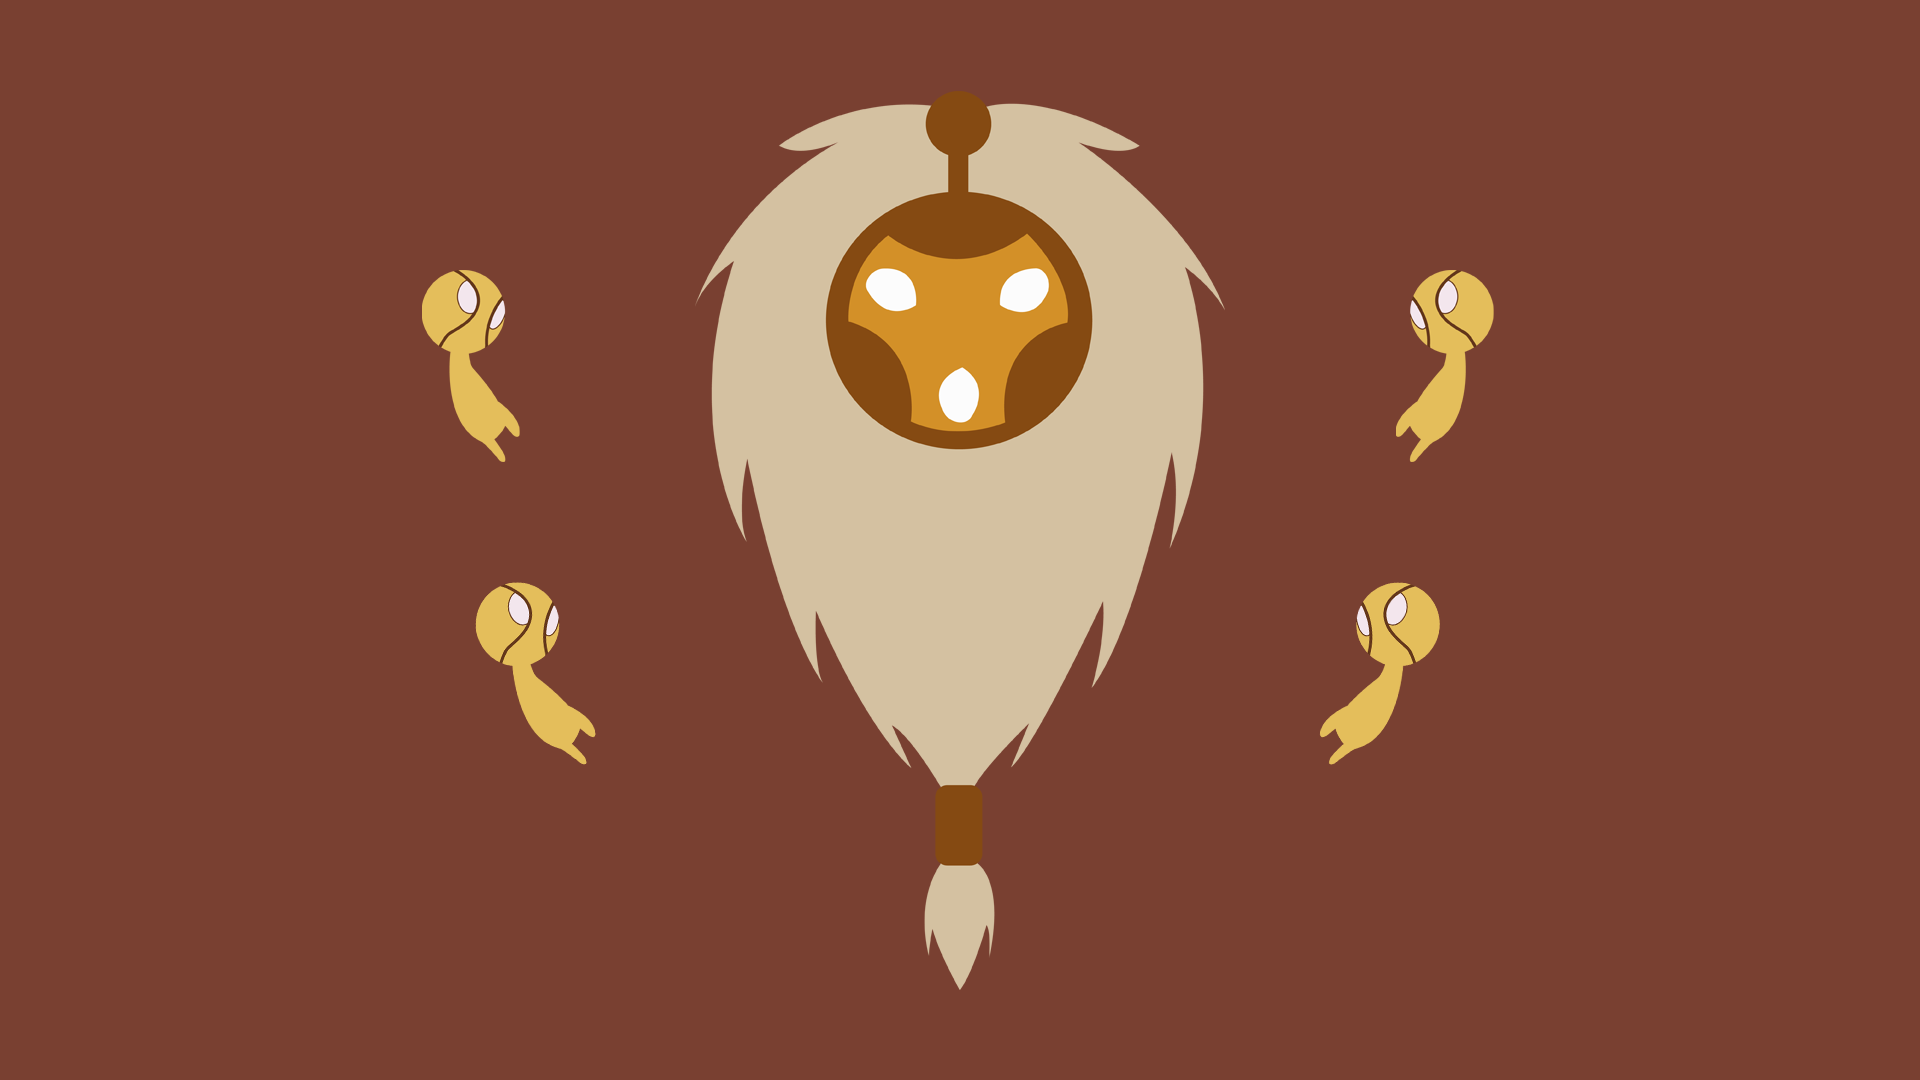 bard minimalistic fan art league of legends wallpapers